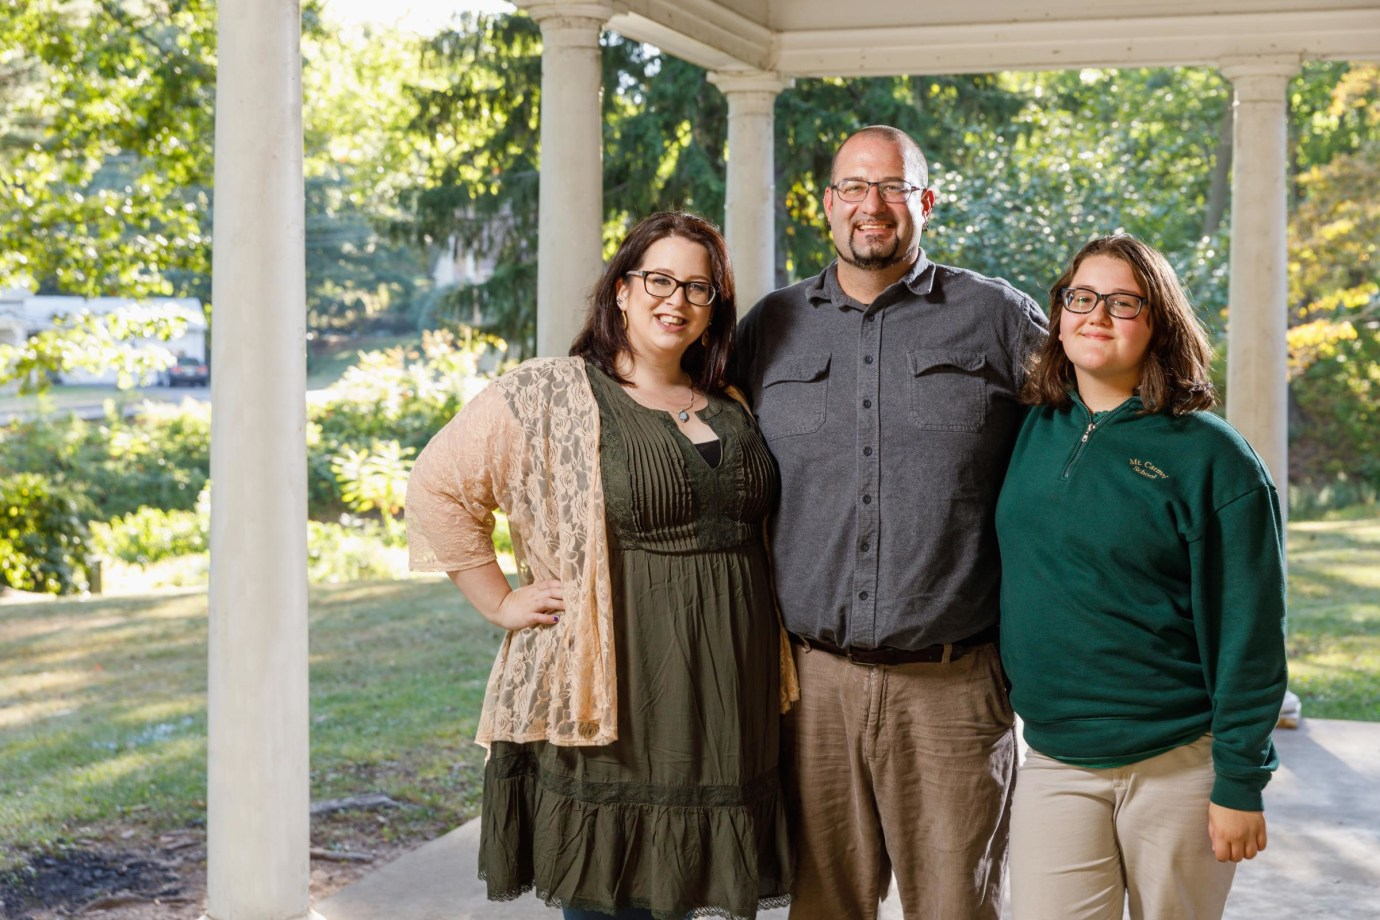 Jennifer, lupus patient, with her husband Chuck and stepdaughter Maddie